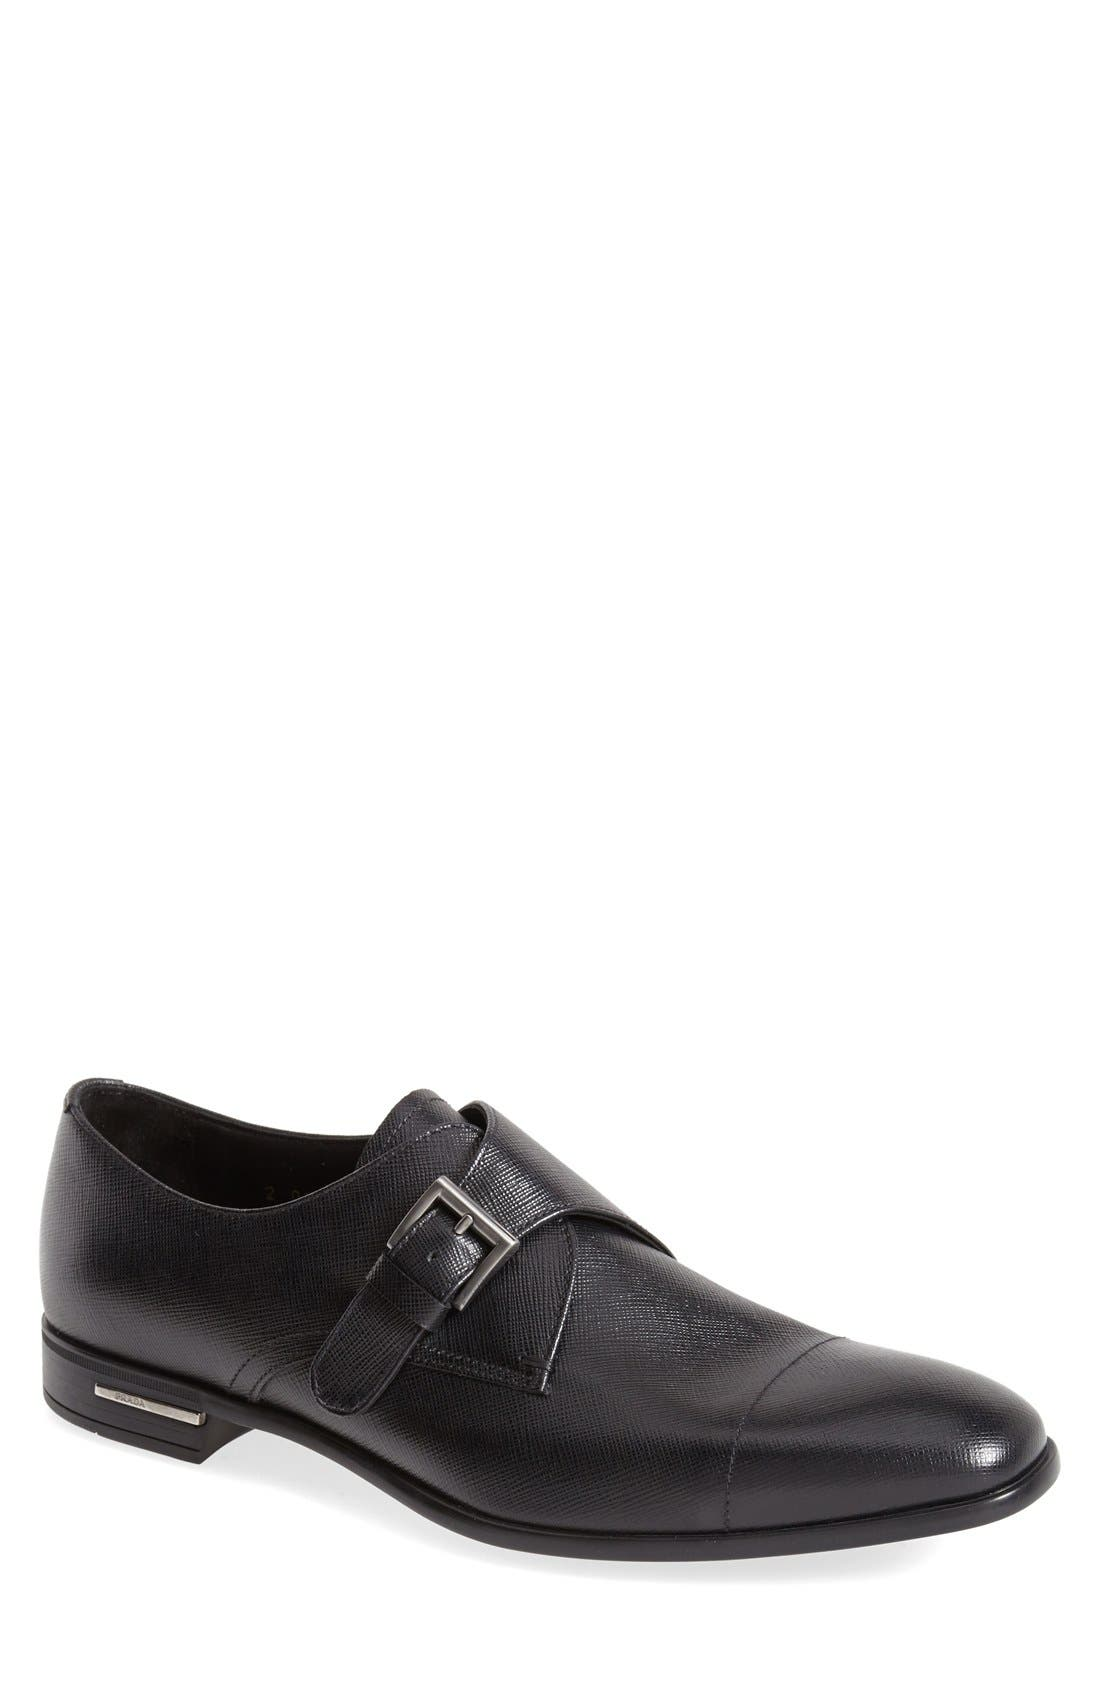 Prada Saffiano Monk Strap Shoe (Men)